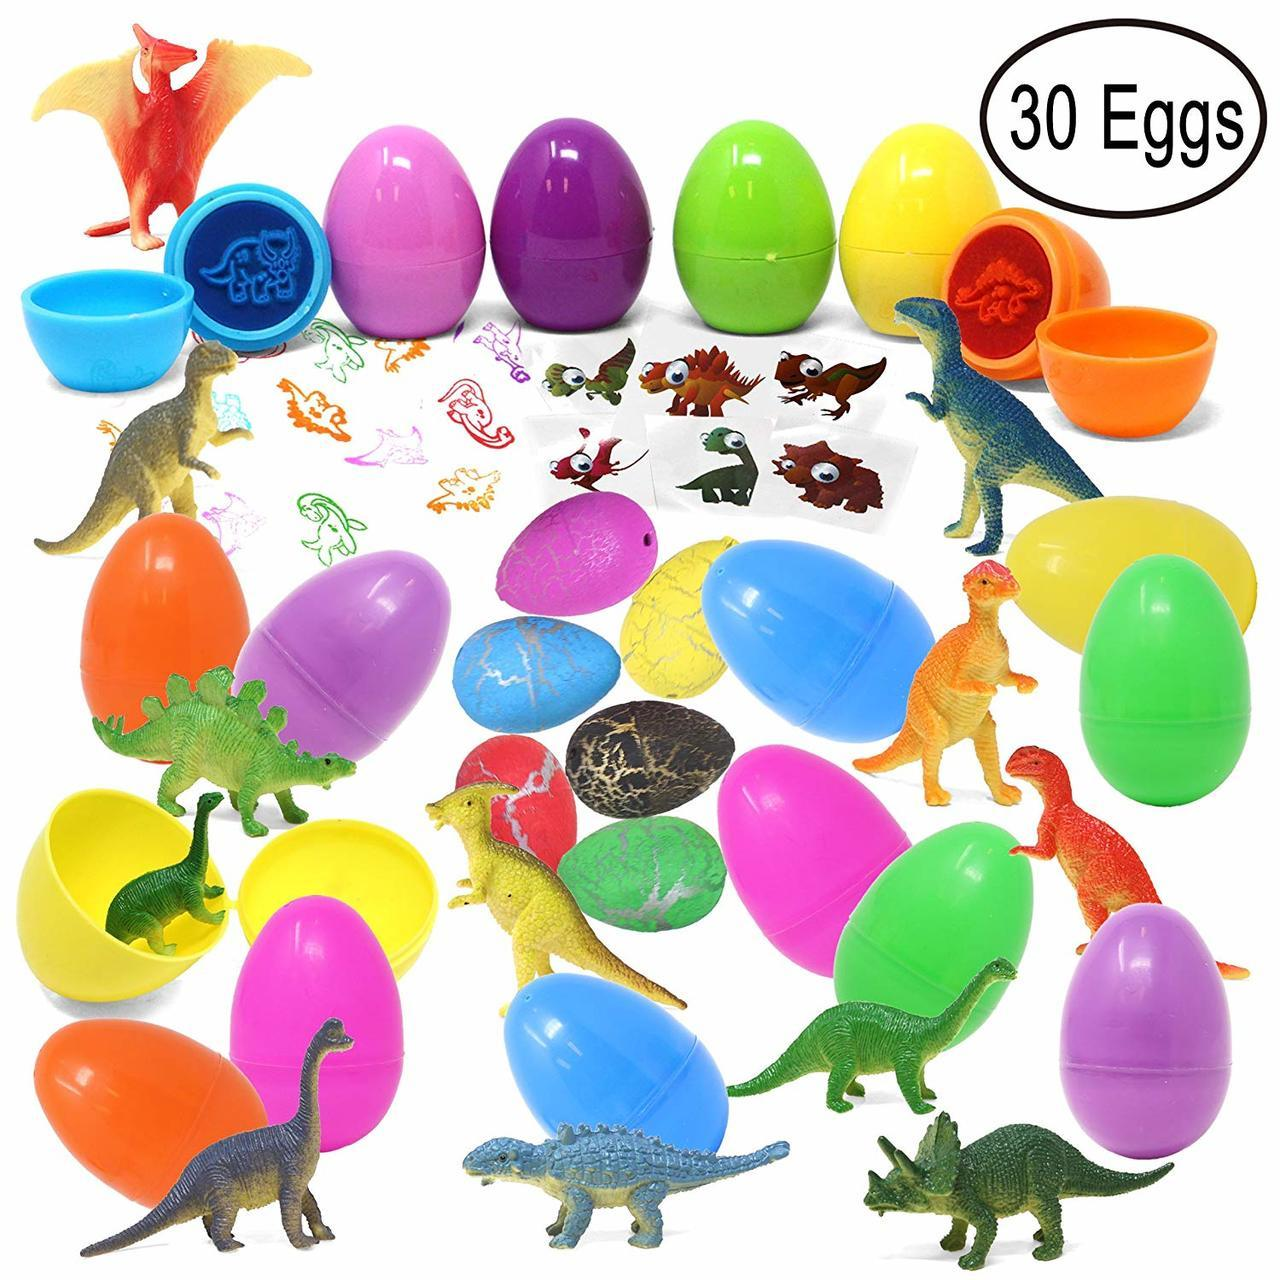 Dinosaur Easter Egg Play Set, 30 Pieces